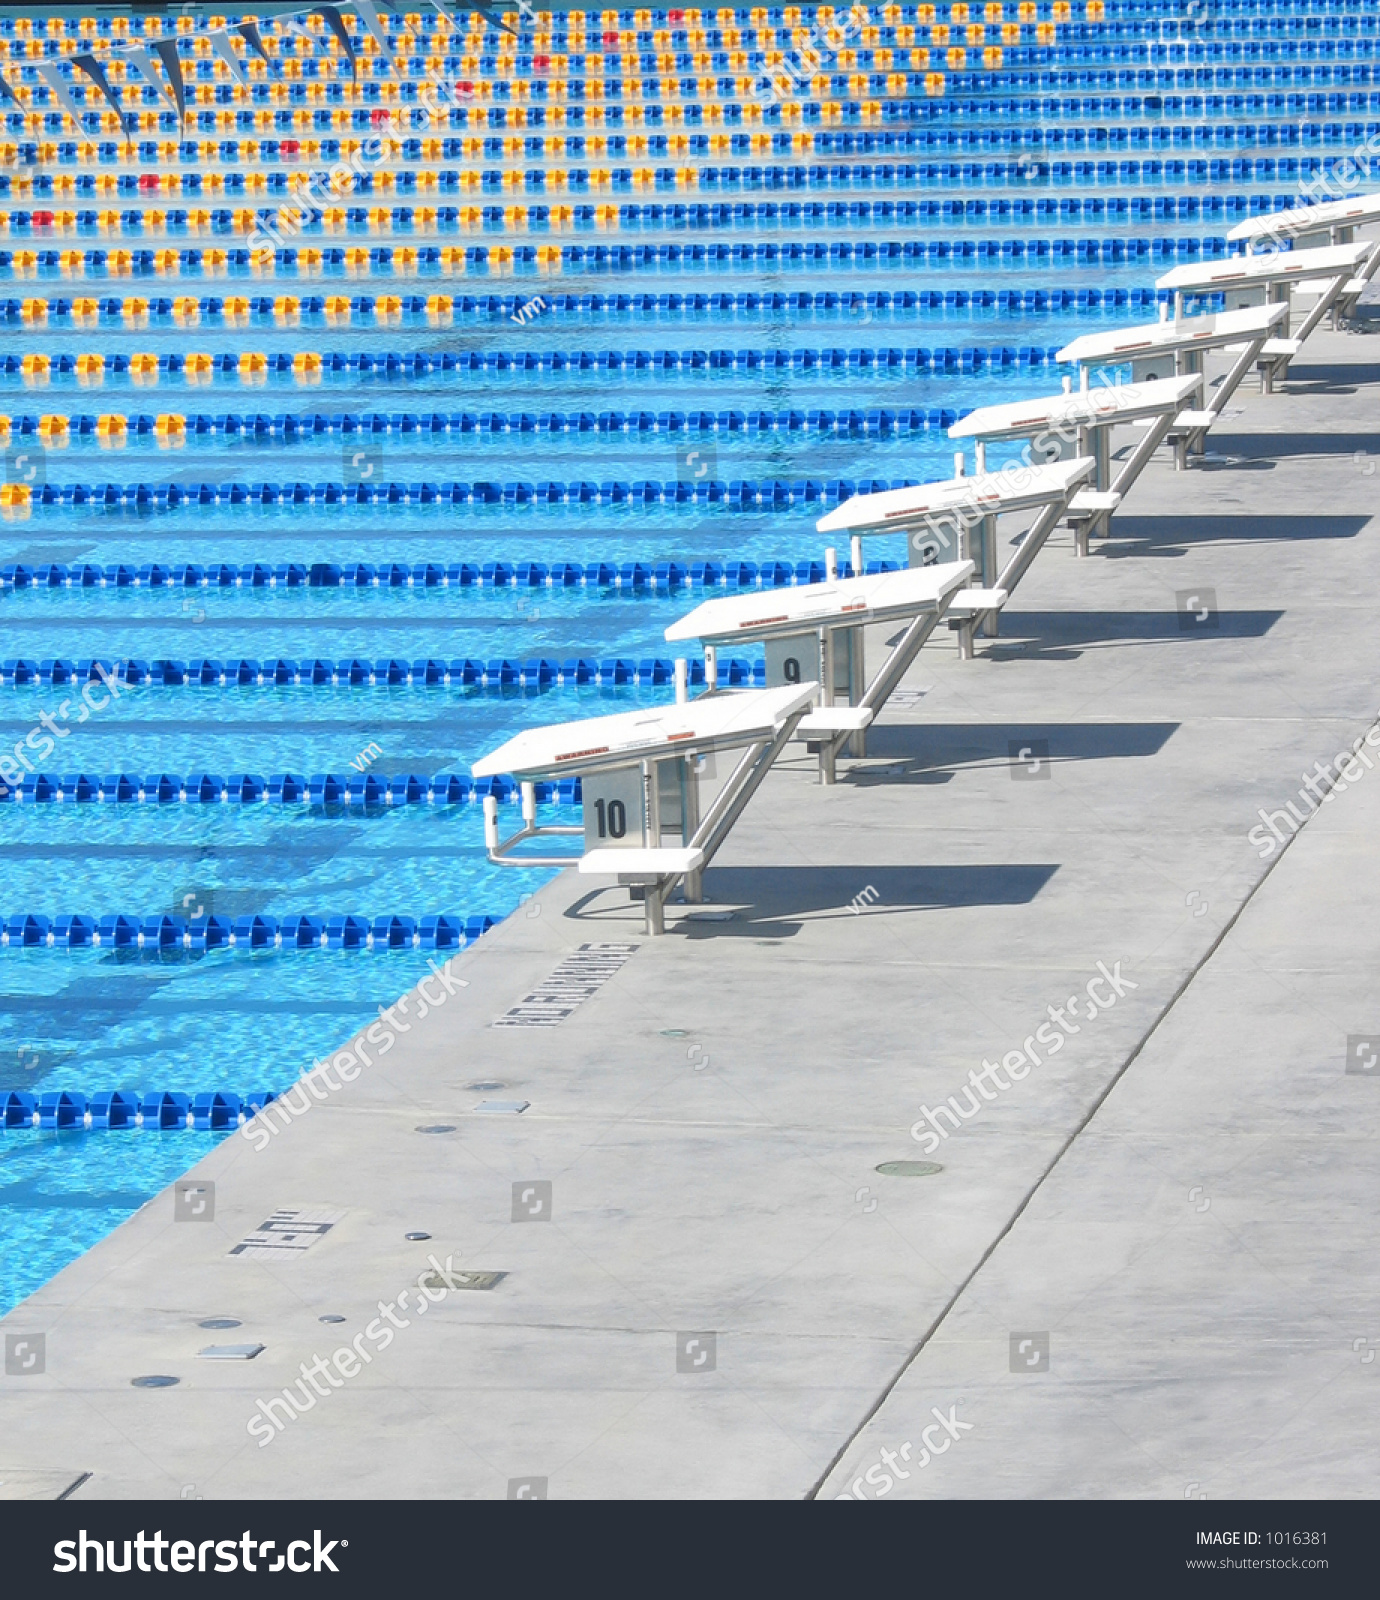 Olympic-Sized Swimming Pool Stock Photo 1016381 : Shutterstock